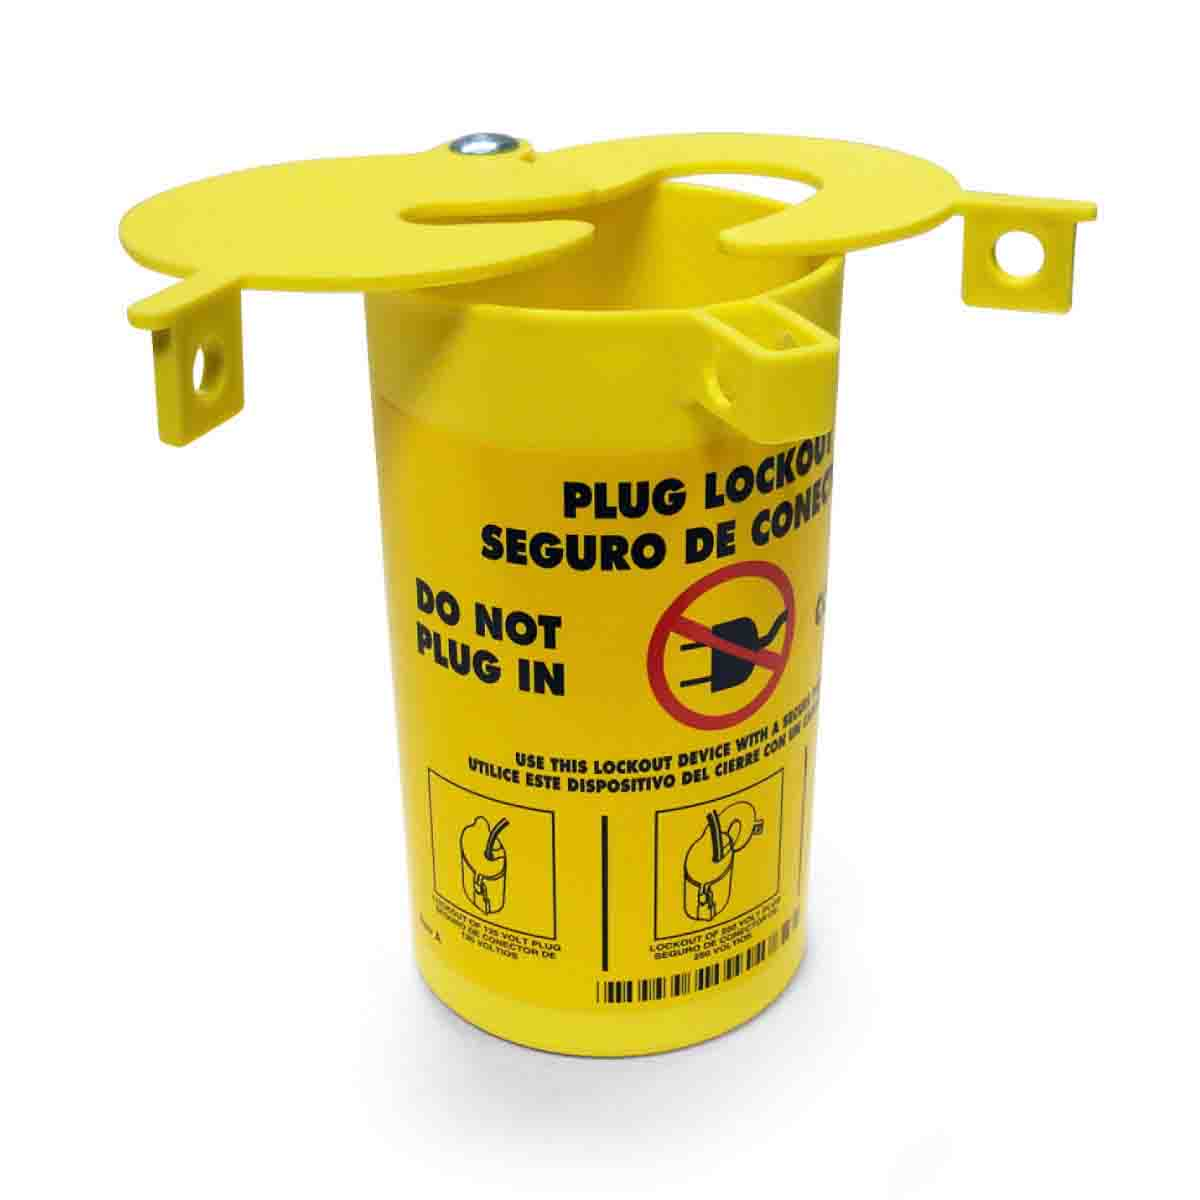 Brady® PLO23 Encasing Electrical Risk Plug Lockout Device, For Use With Small, Medium and Large Diameter Cord Up to 1-1/4 in, 0.37 in Dia Max Padlock Shackle, LOTO-28 Thermoplastic Elastomer, Yellow